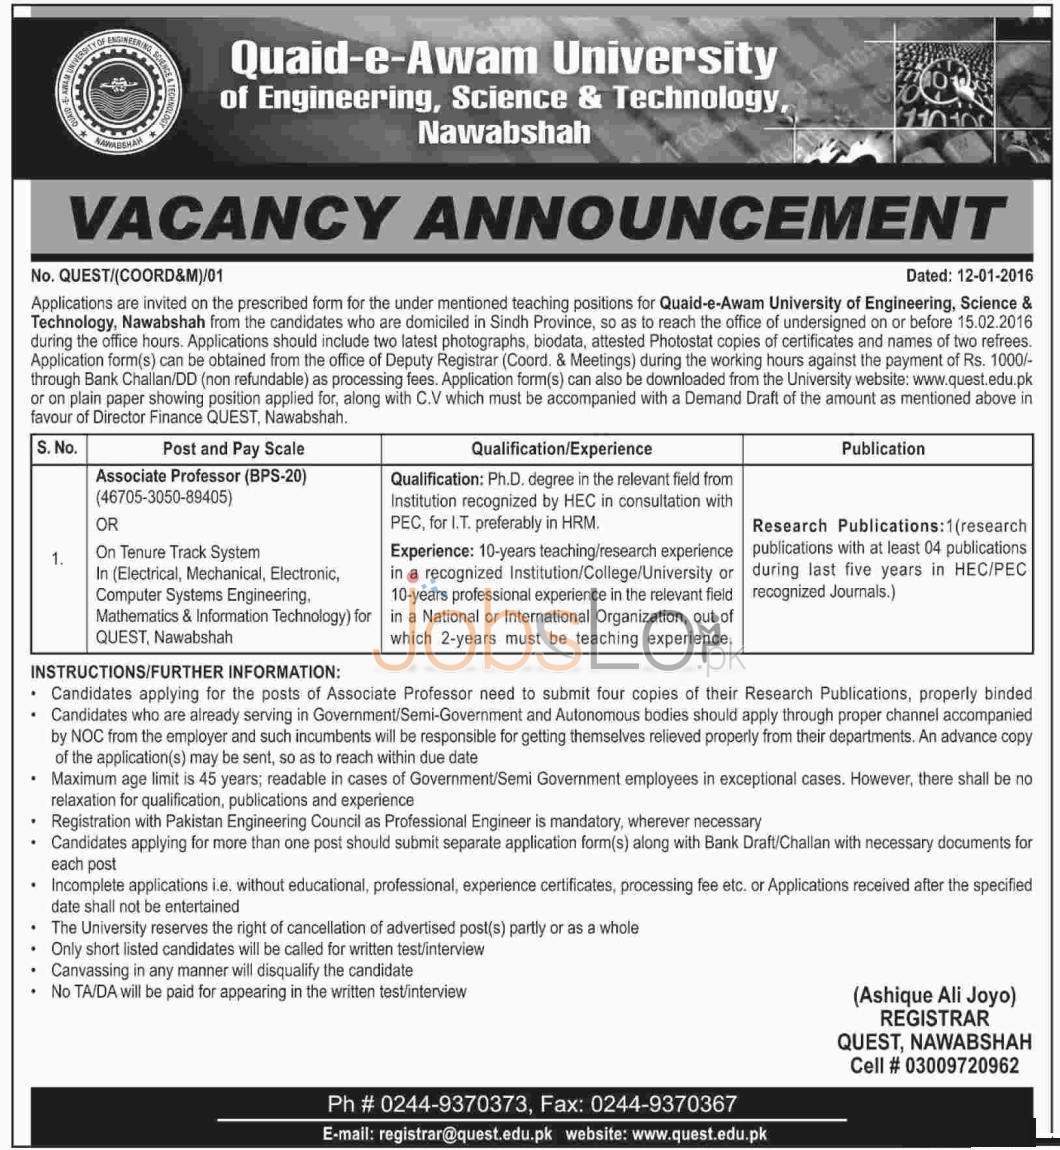 Quaid-e- Awam University of Engineering, Science and Technology Nawabshah Job for Associate Professor